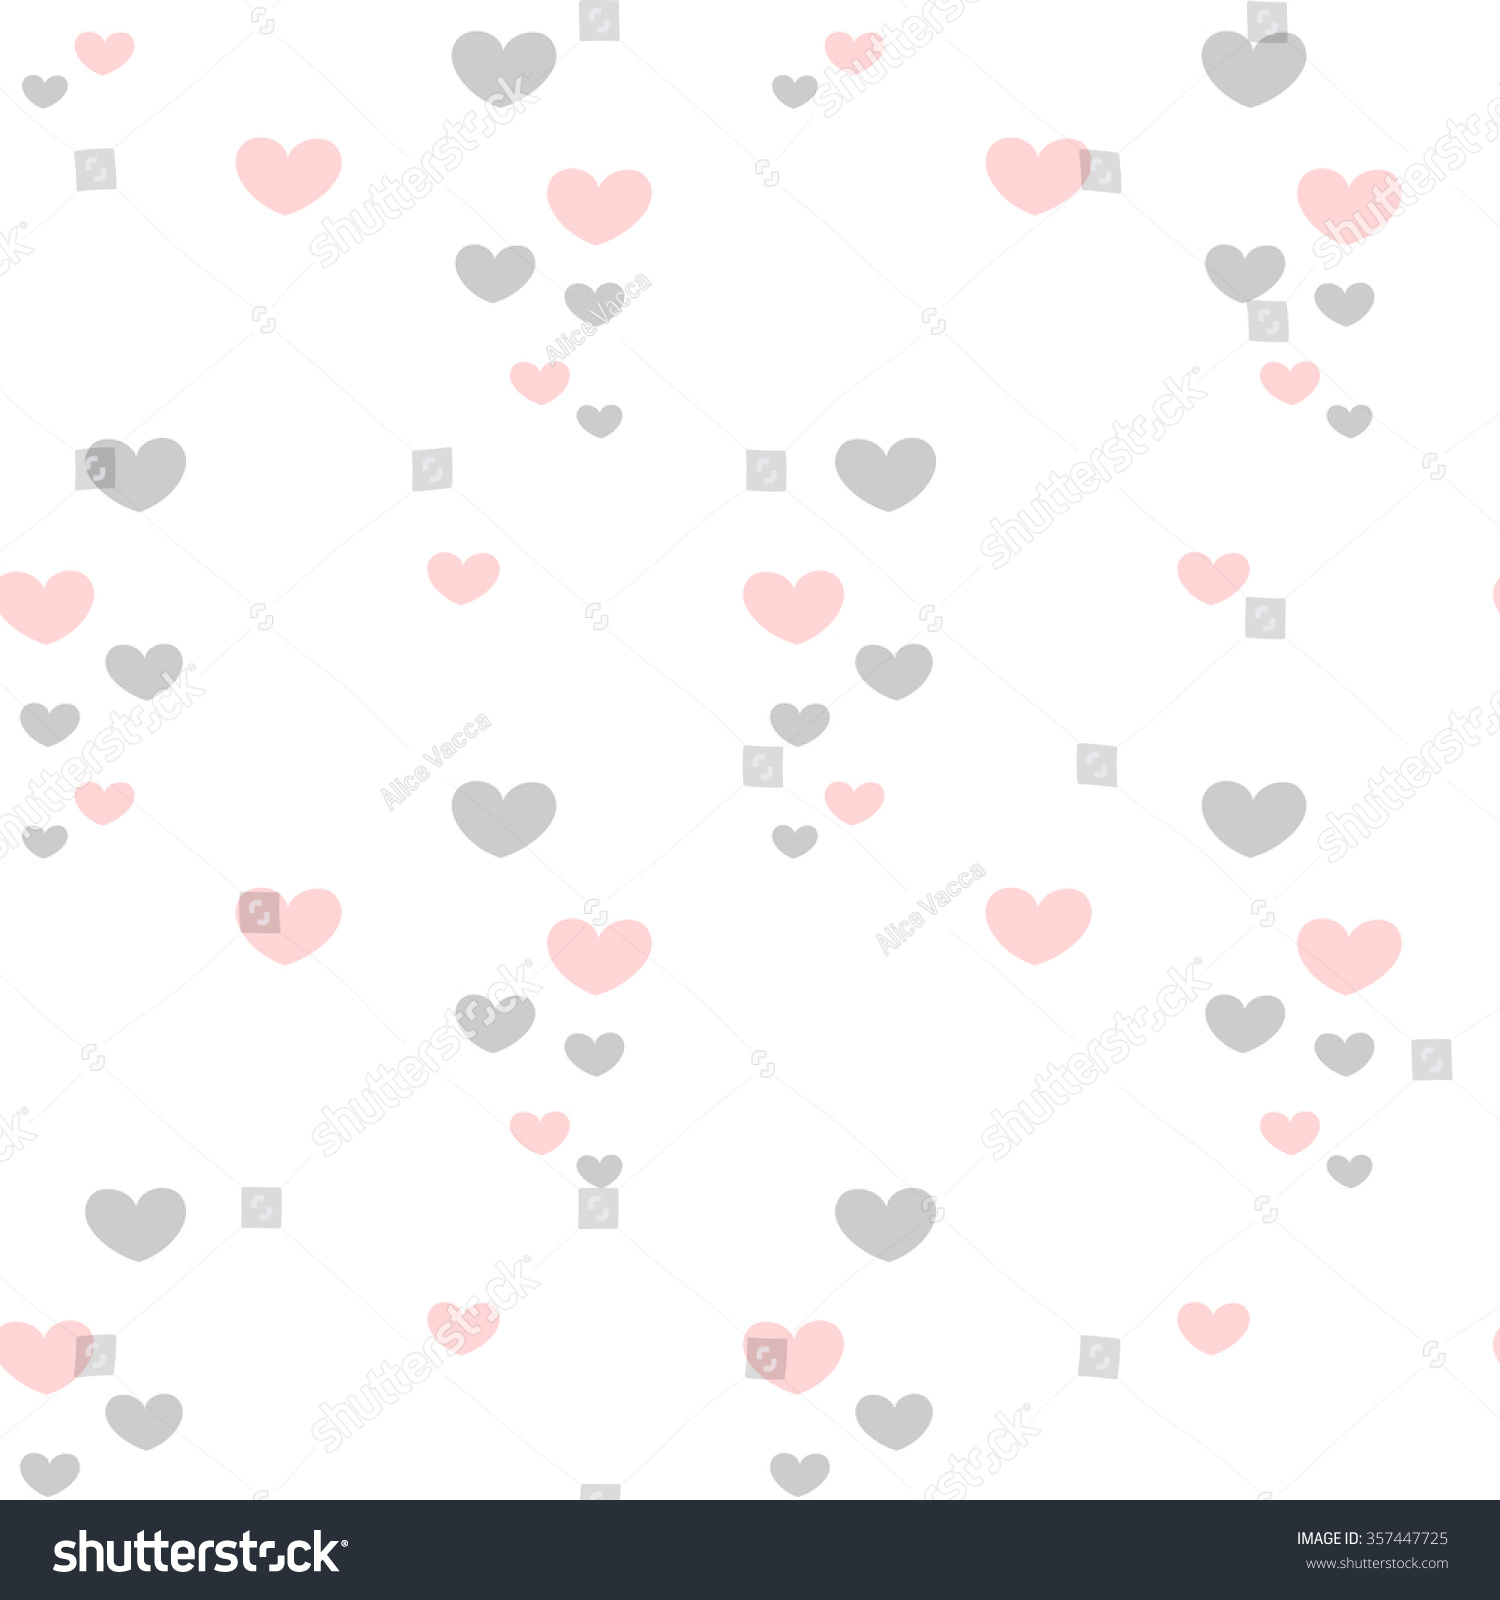 cute lovely romantic pink grey hearts stock vector royalty free